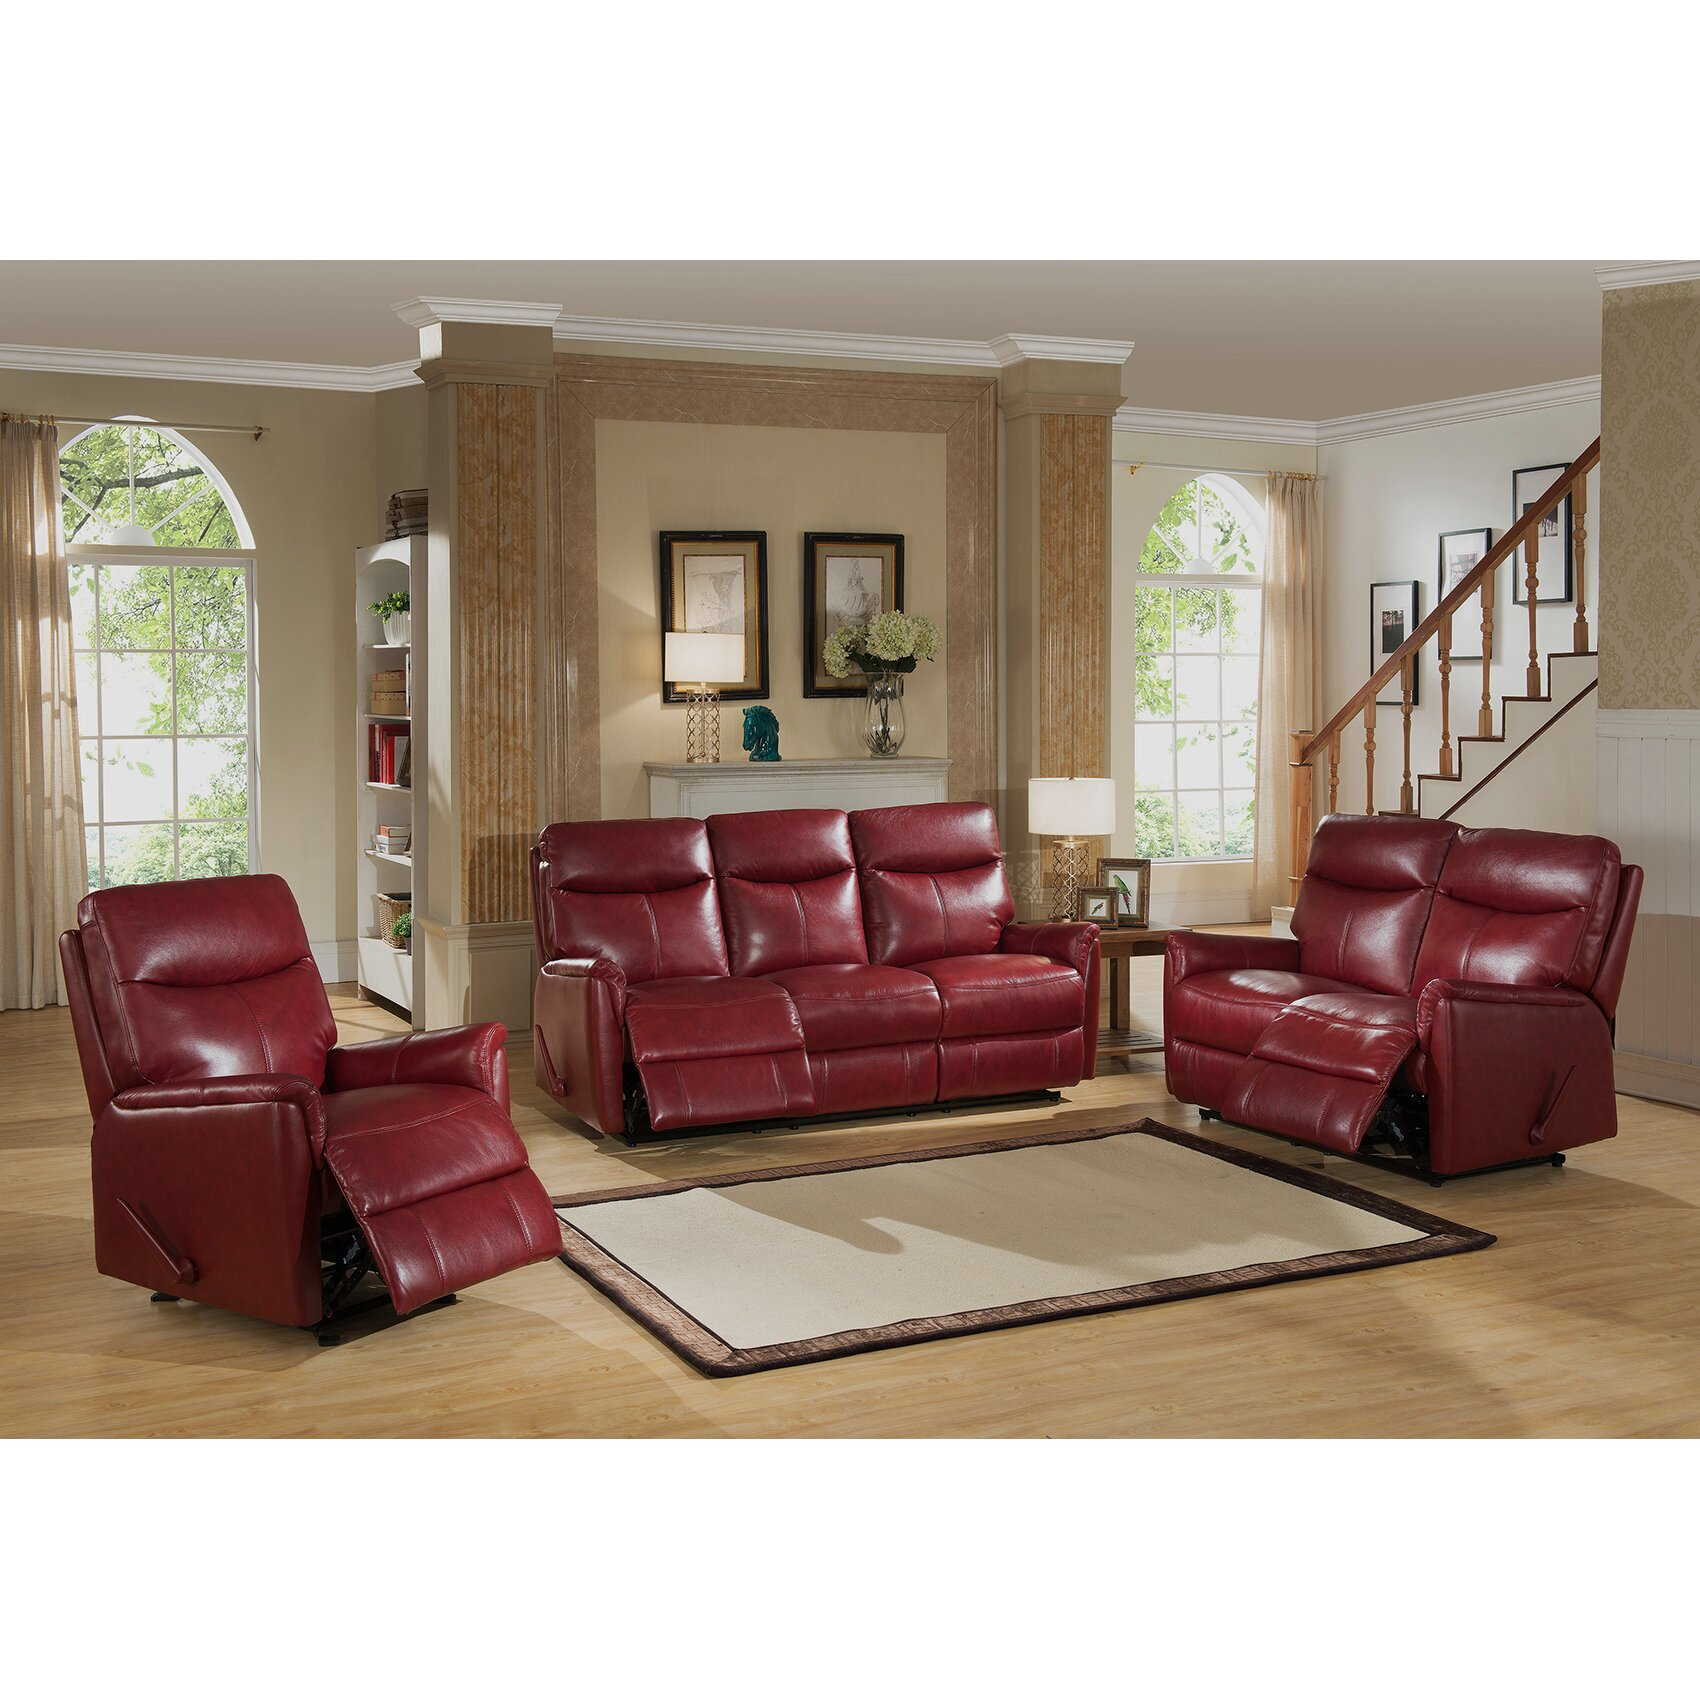 Amax napa 3 piece leather lay flat reclining living room for 3 piece living room set